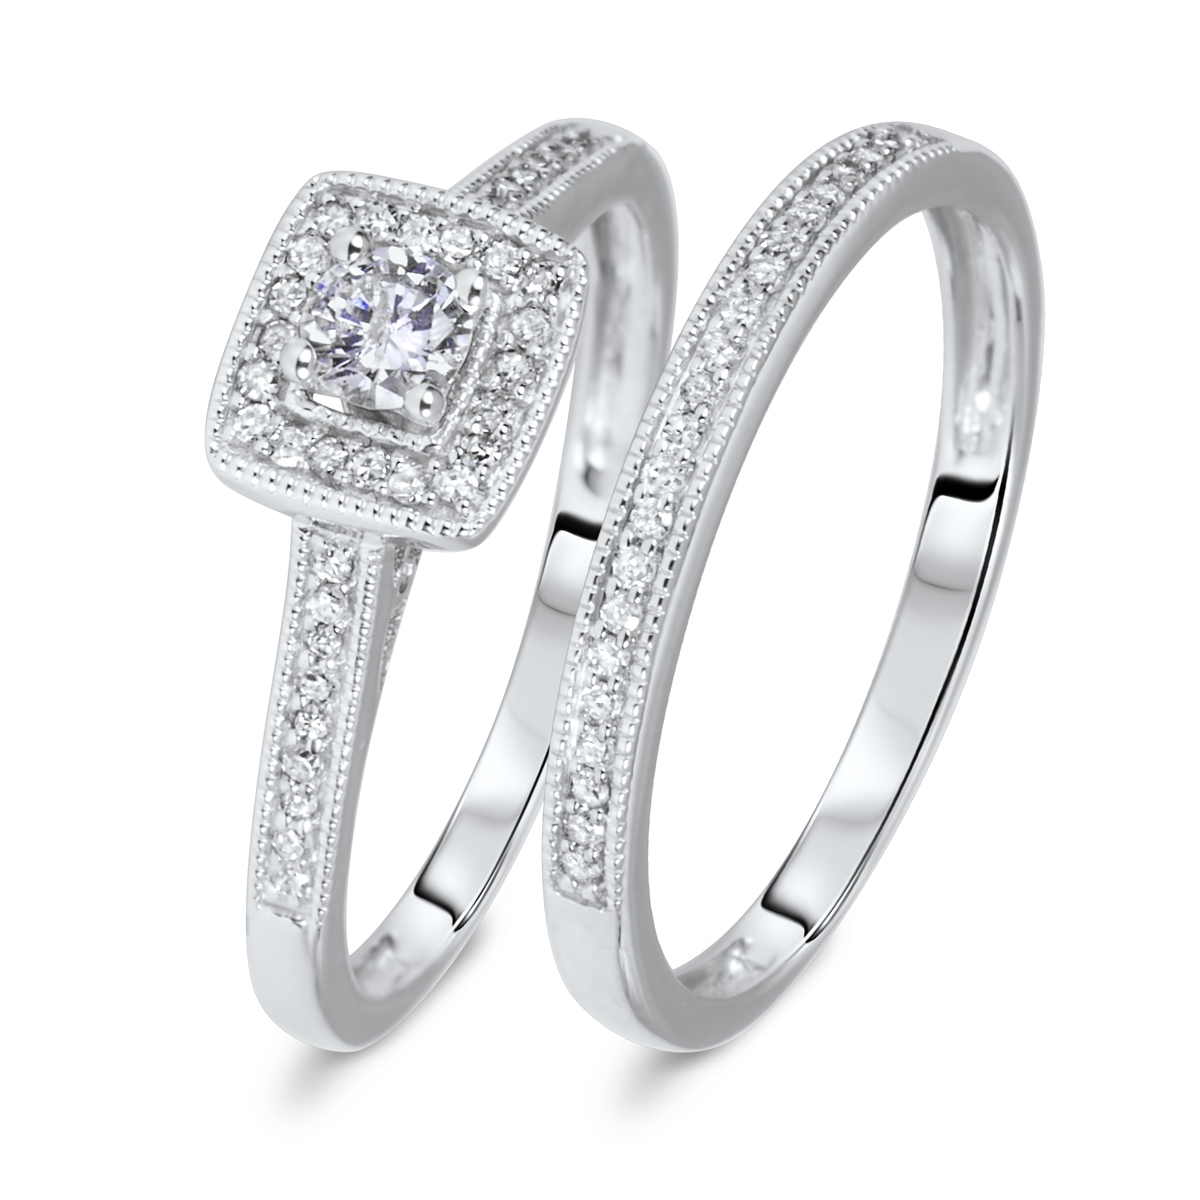 1/3 CT. T.W. Round Cut Diamond Ladies Bridal Wedding Ring Set 10K White Gold